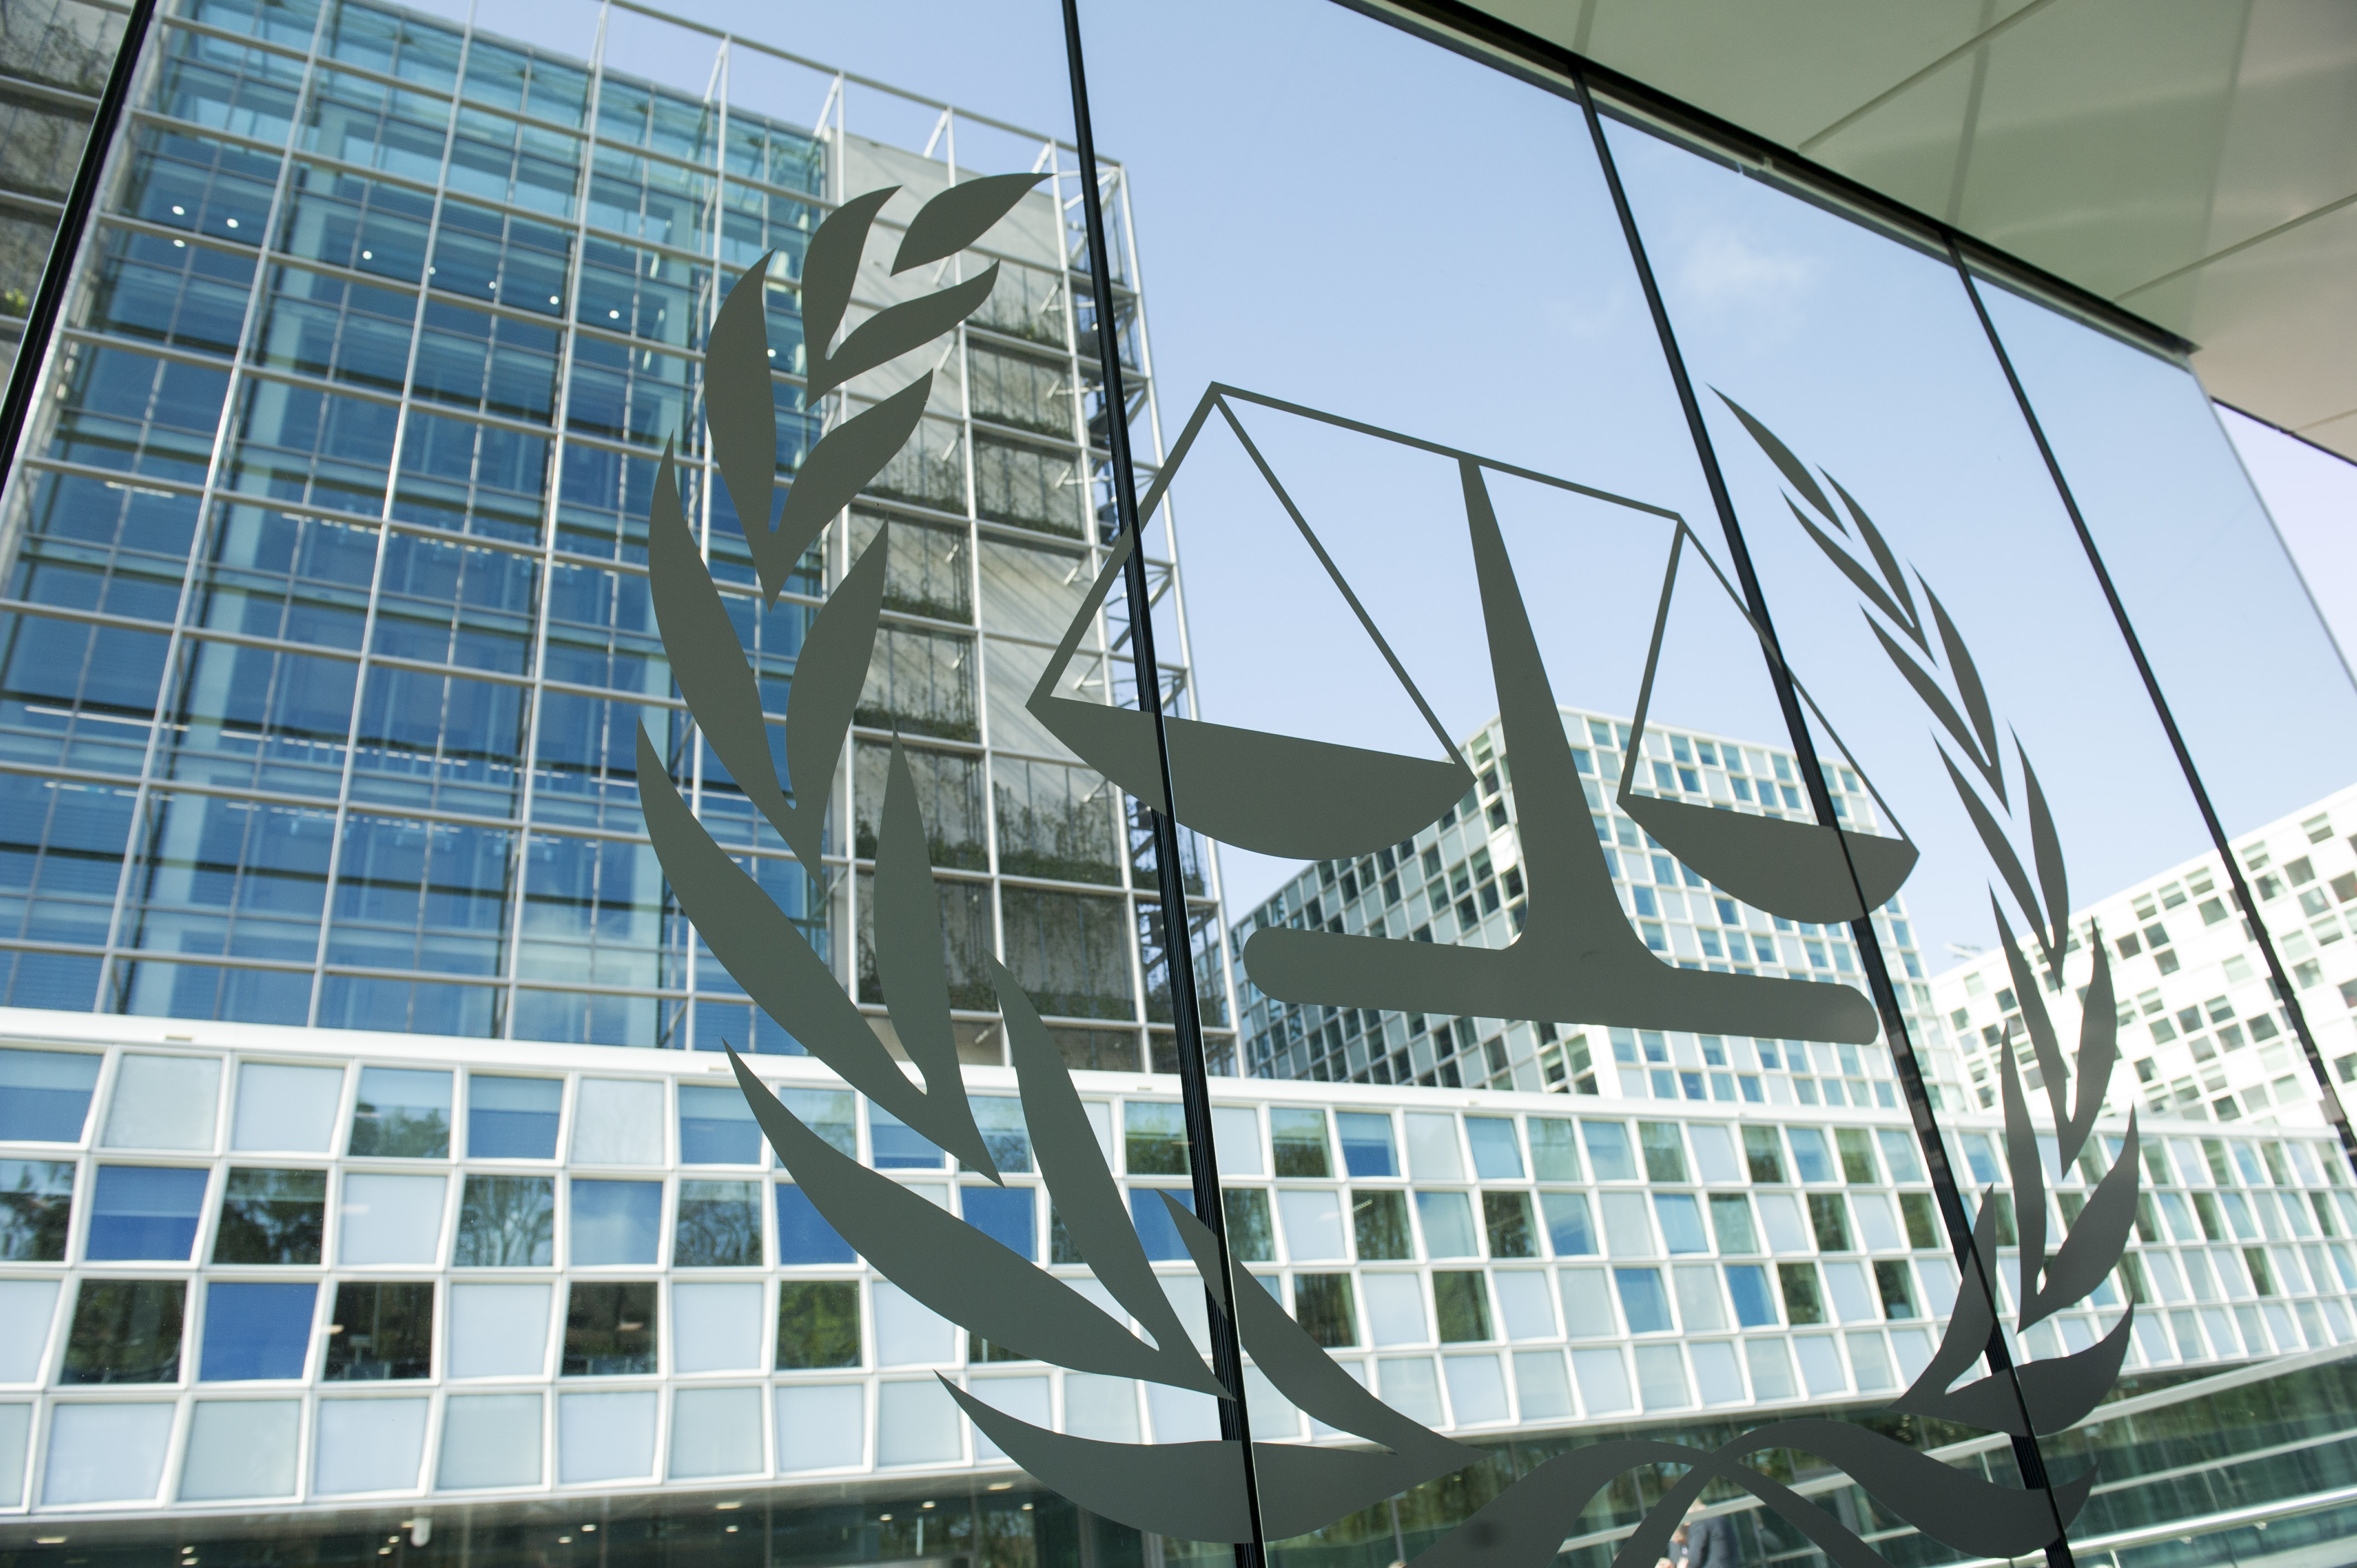 The International Criminal Court - One component of international law